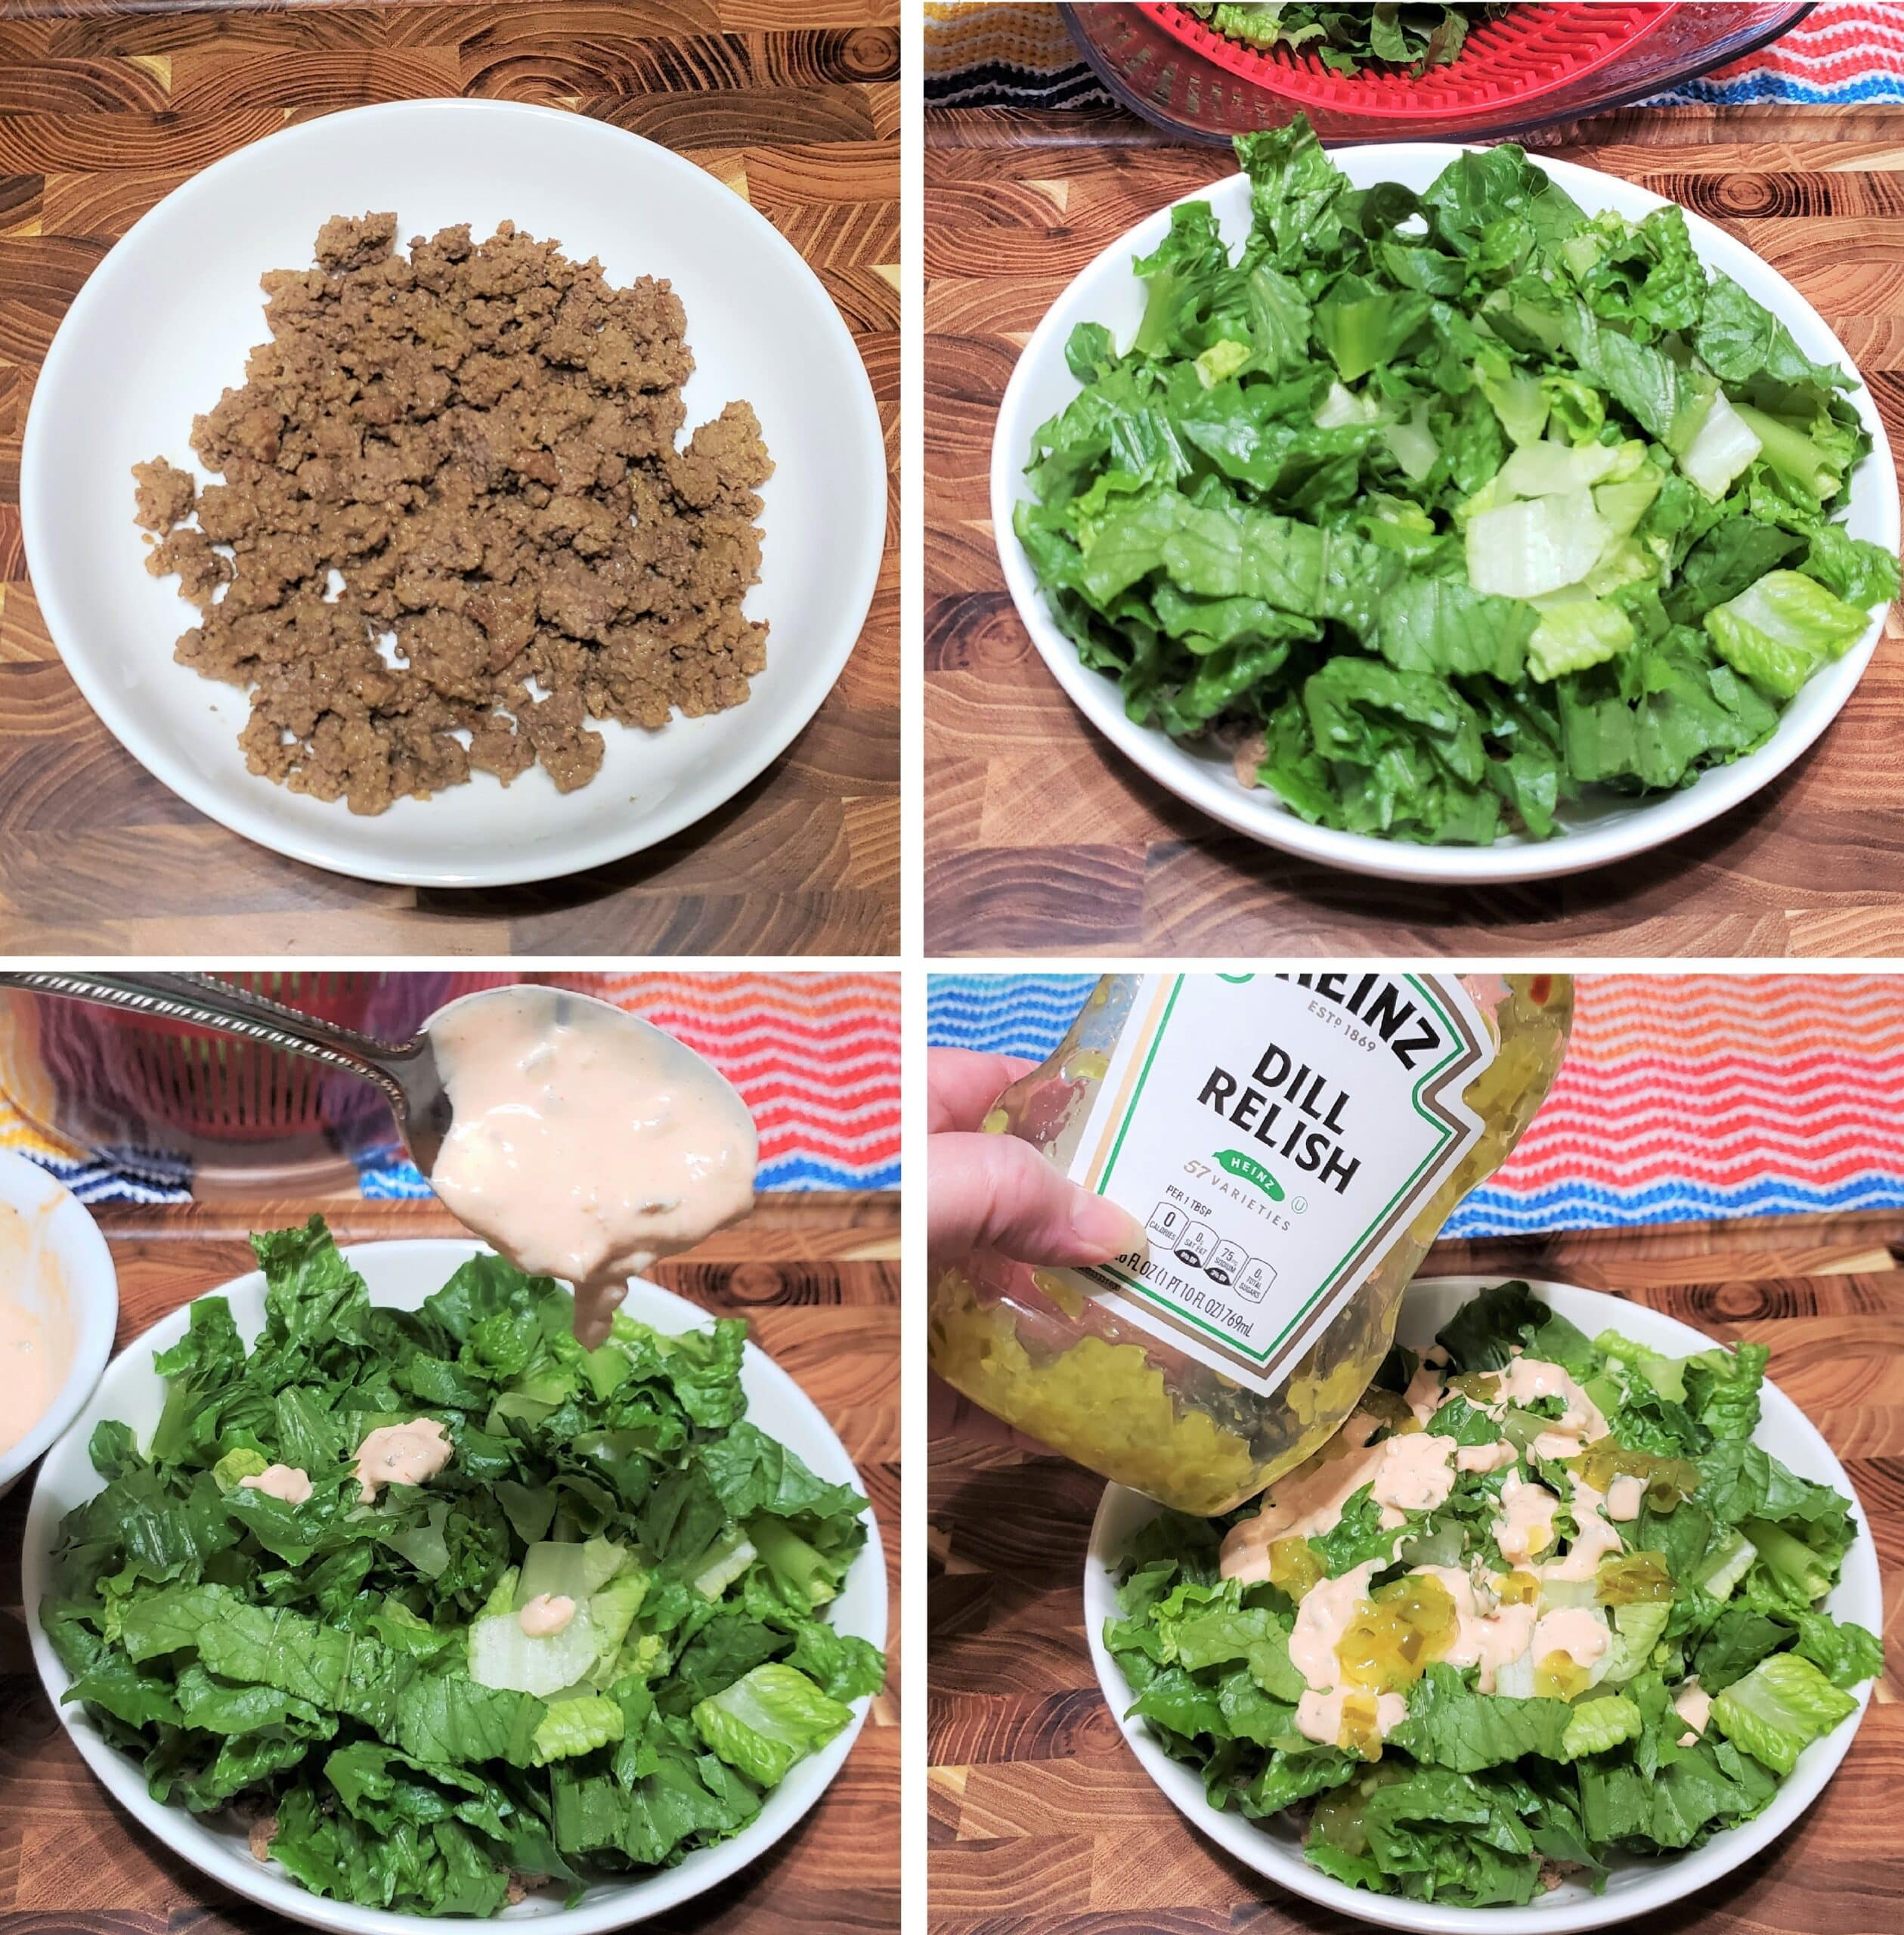 Layering on lettuce, dressing, relish and cheese